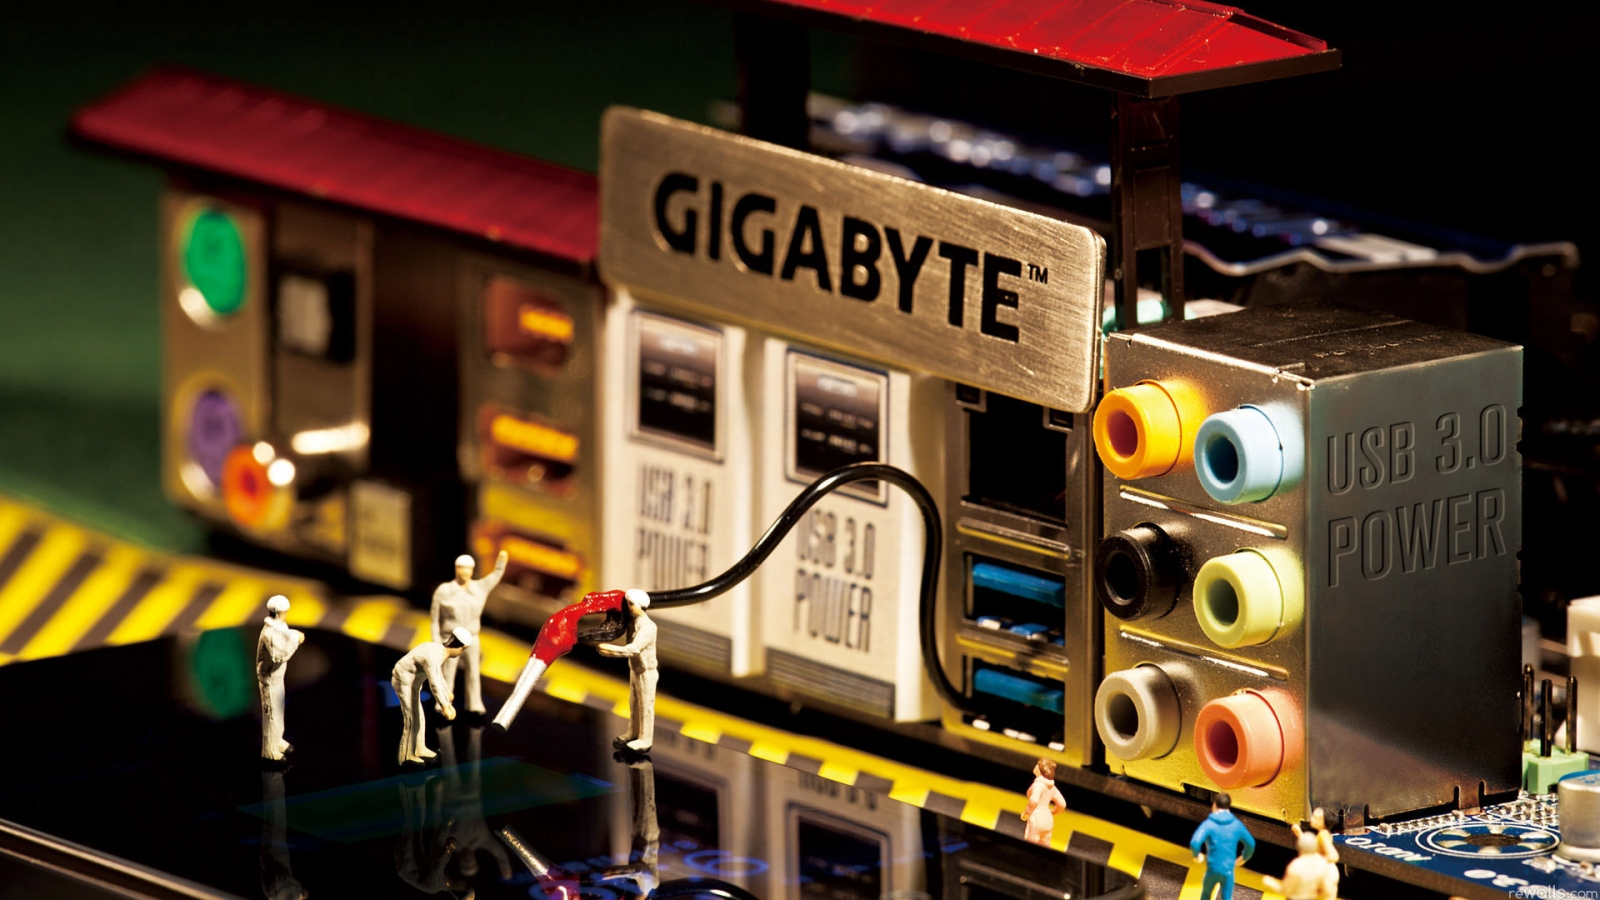 gigabyte motherboards computer wallpapers - photo #25